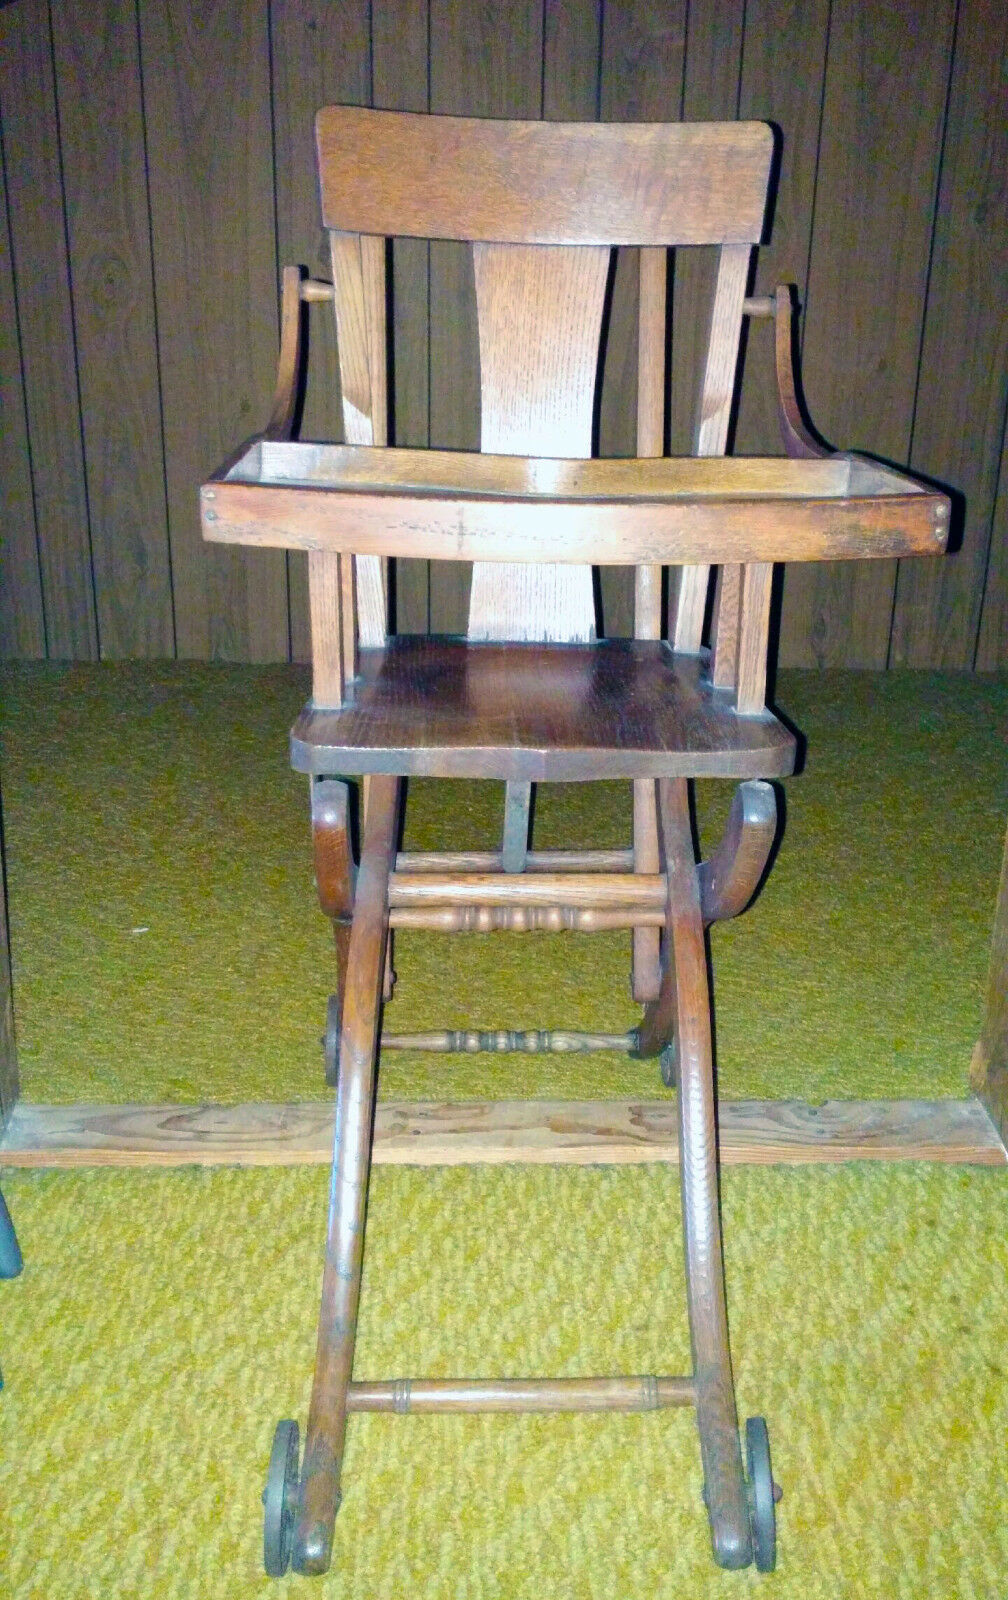 Antique Child High Chair Oak Wood Converts To Walker Stroller 1 of 4Only 1  available ... - ANTIQUE CHILD HIGH Chair Oak Wood Converts To Walker Stroller